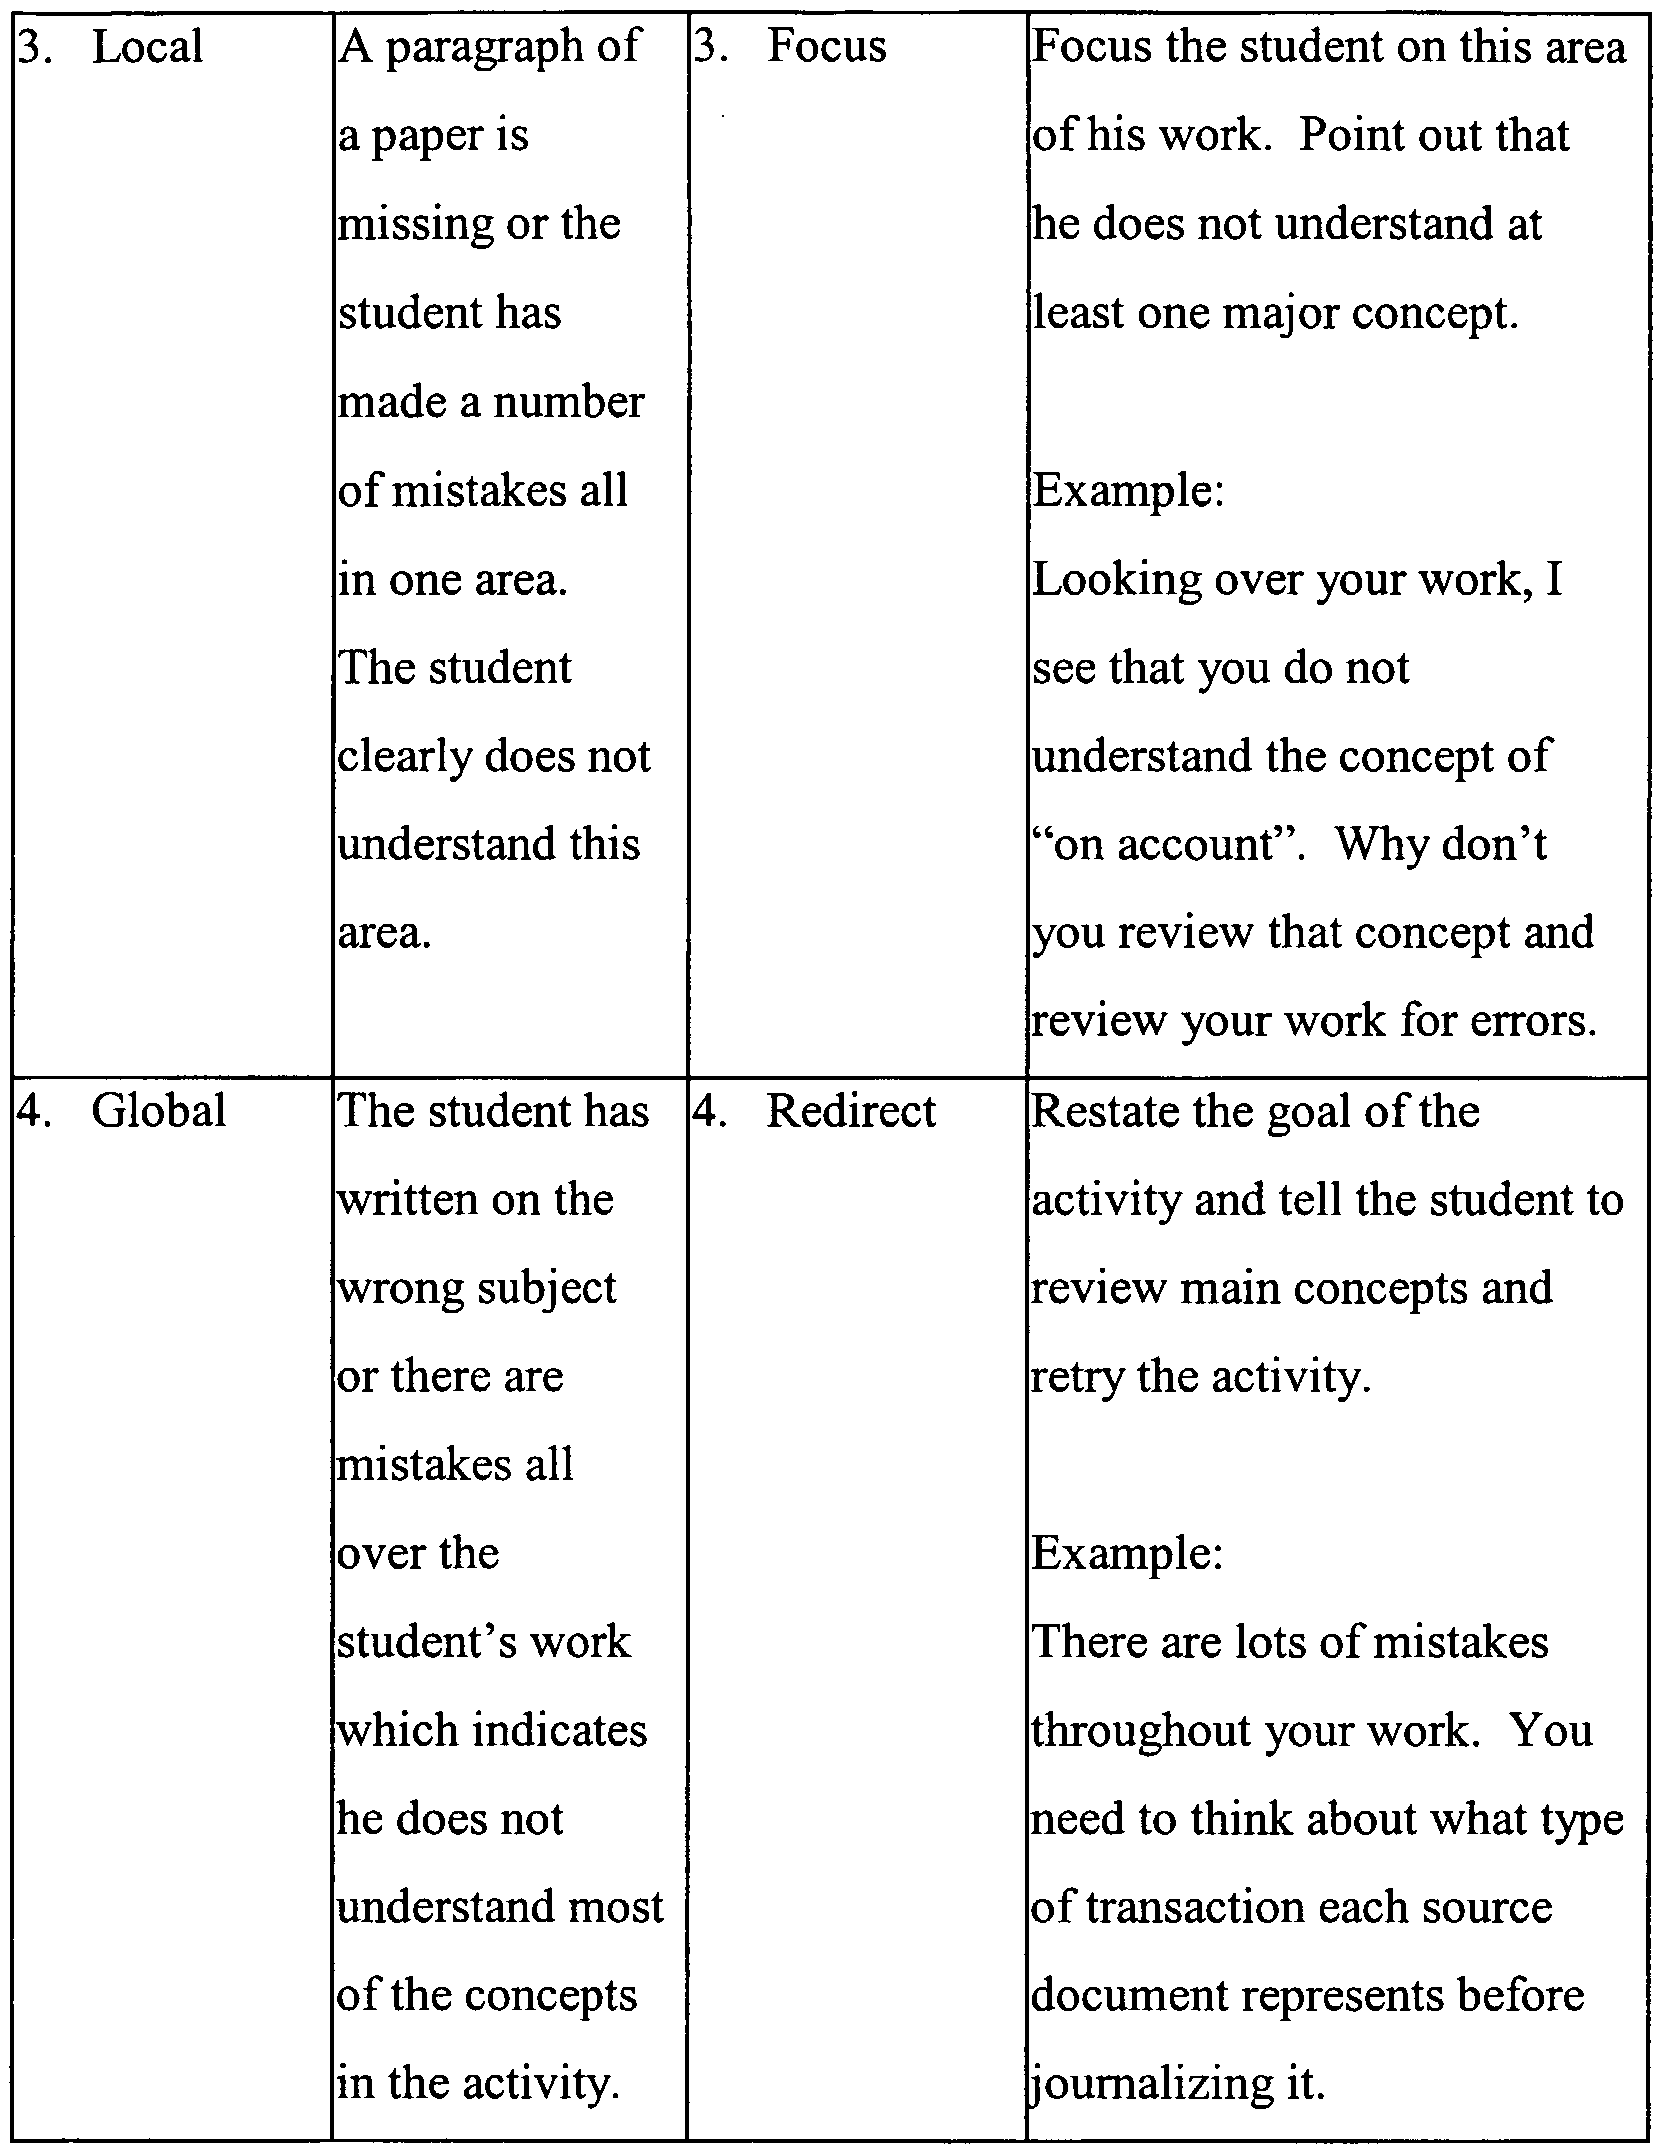 worksheet Analogies Worksheet pictures cell analogy worksheet pigmu city laveyla com